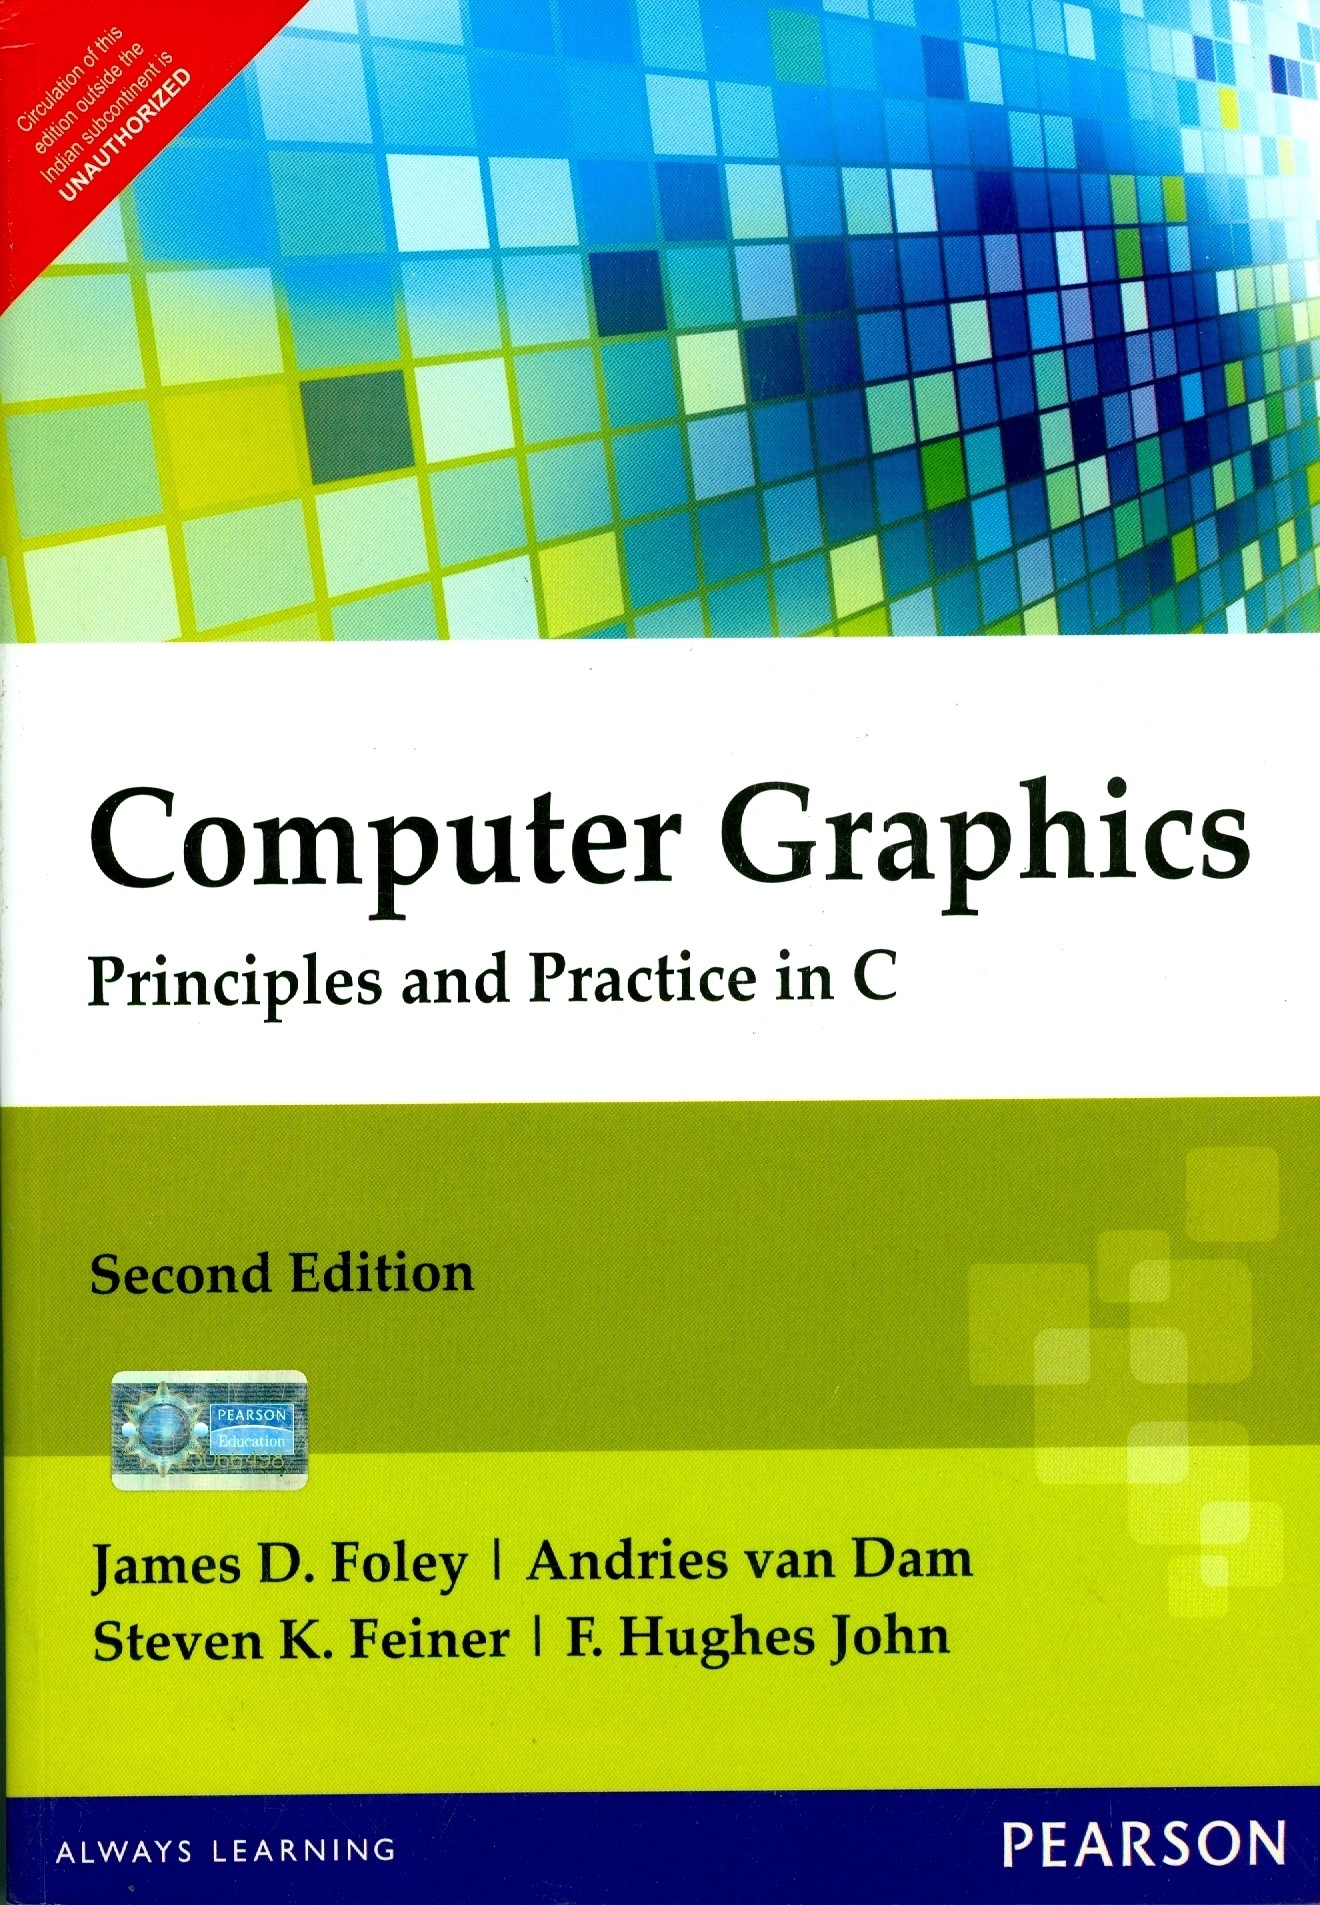 Computer Graphics - Wikibooks open books for an open world